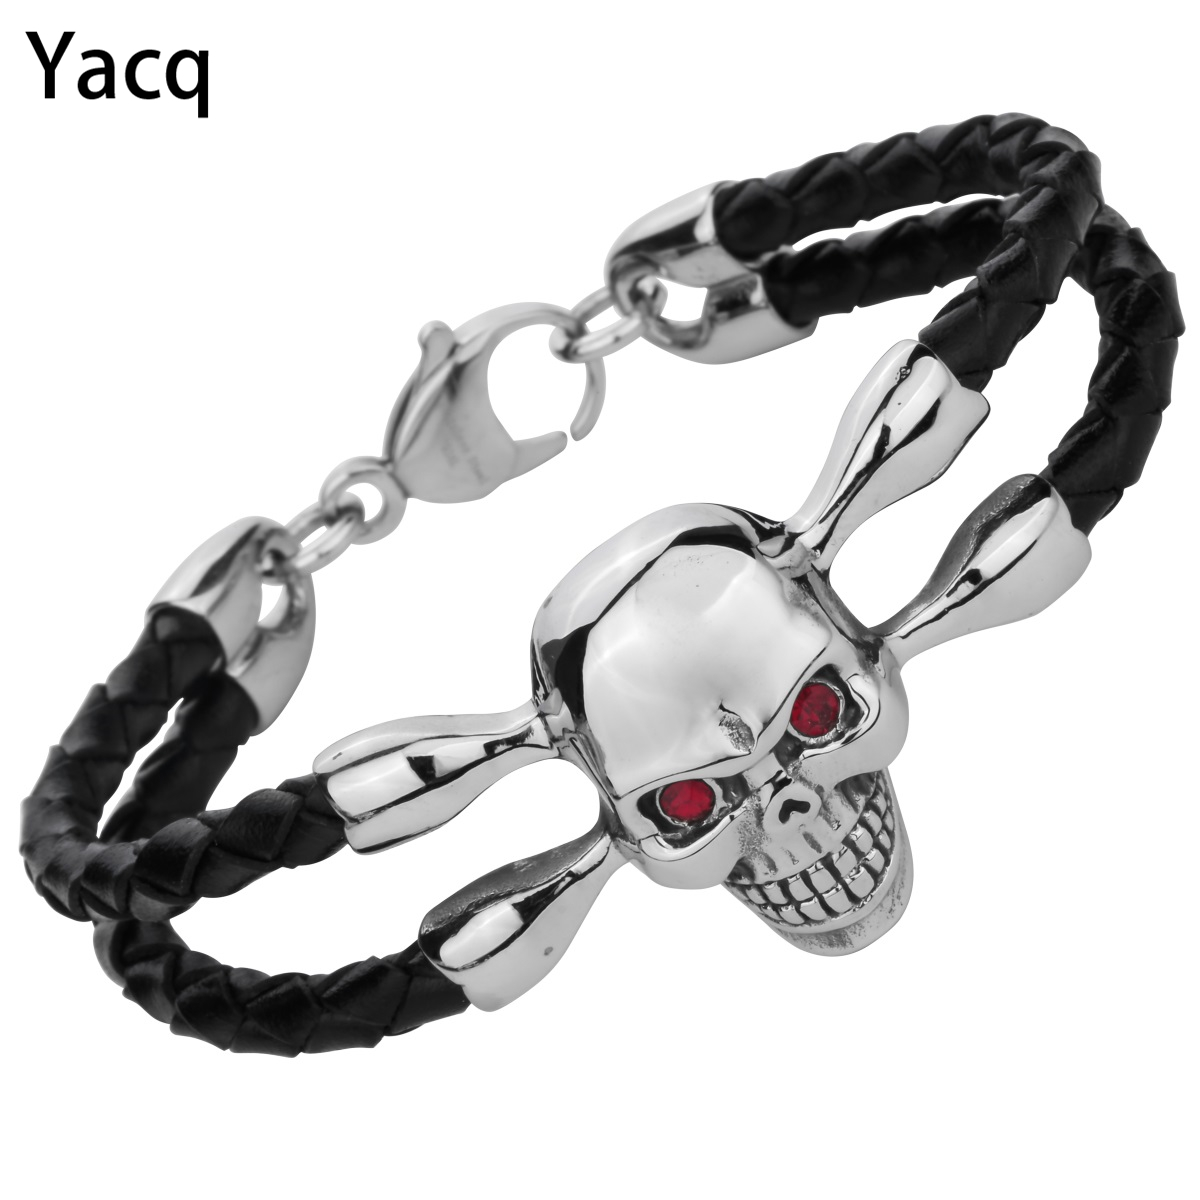 Black leather Skull Mens Bracelet Stainless Steel Biker Heavy Jewelry Fathers Day Gifts for Dad Boyfriend dropshipping 8.5 D109